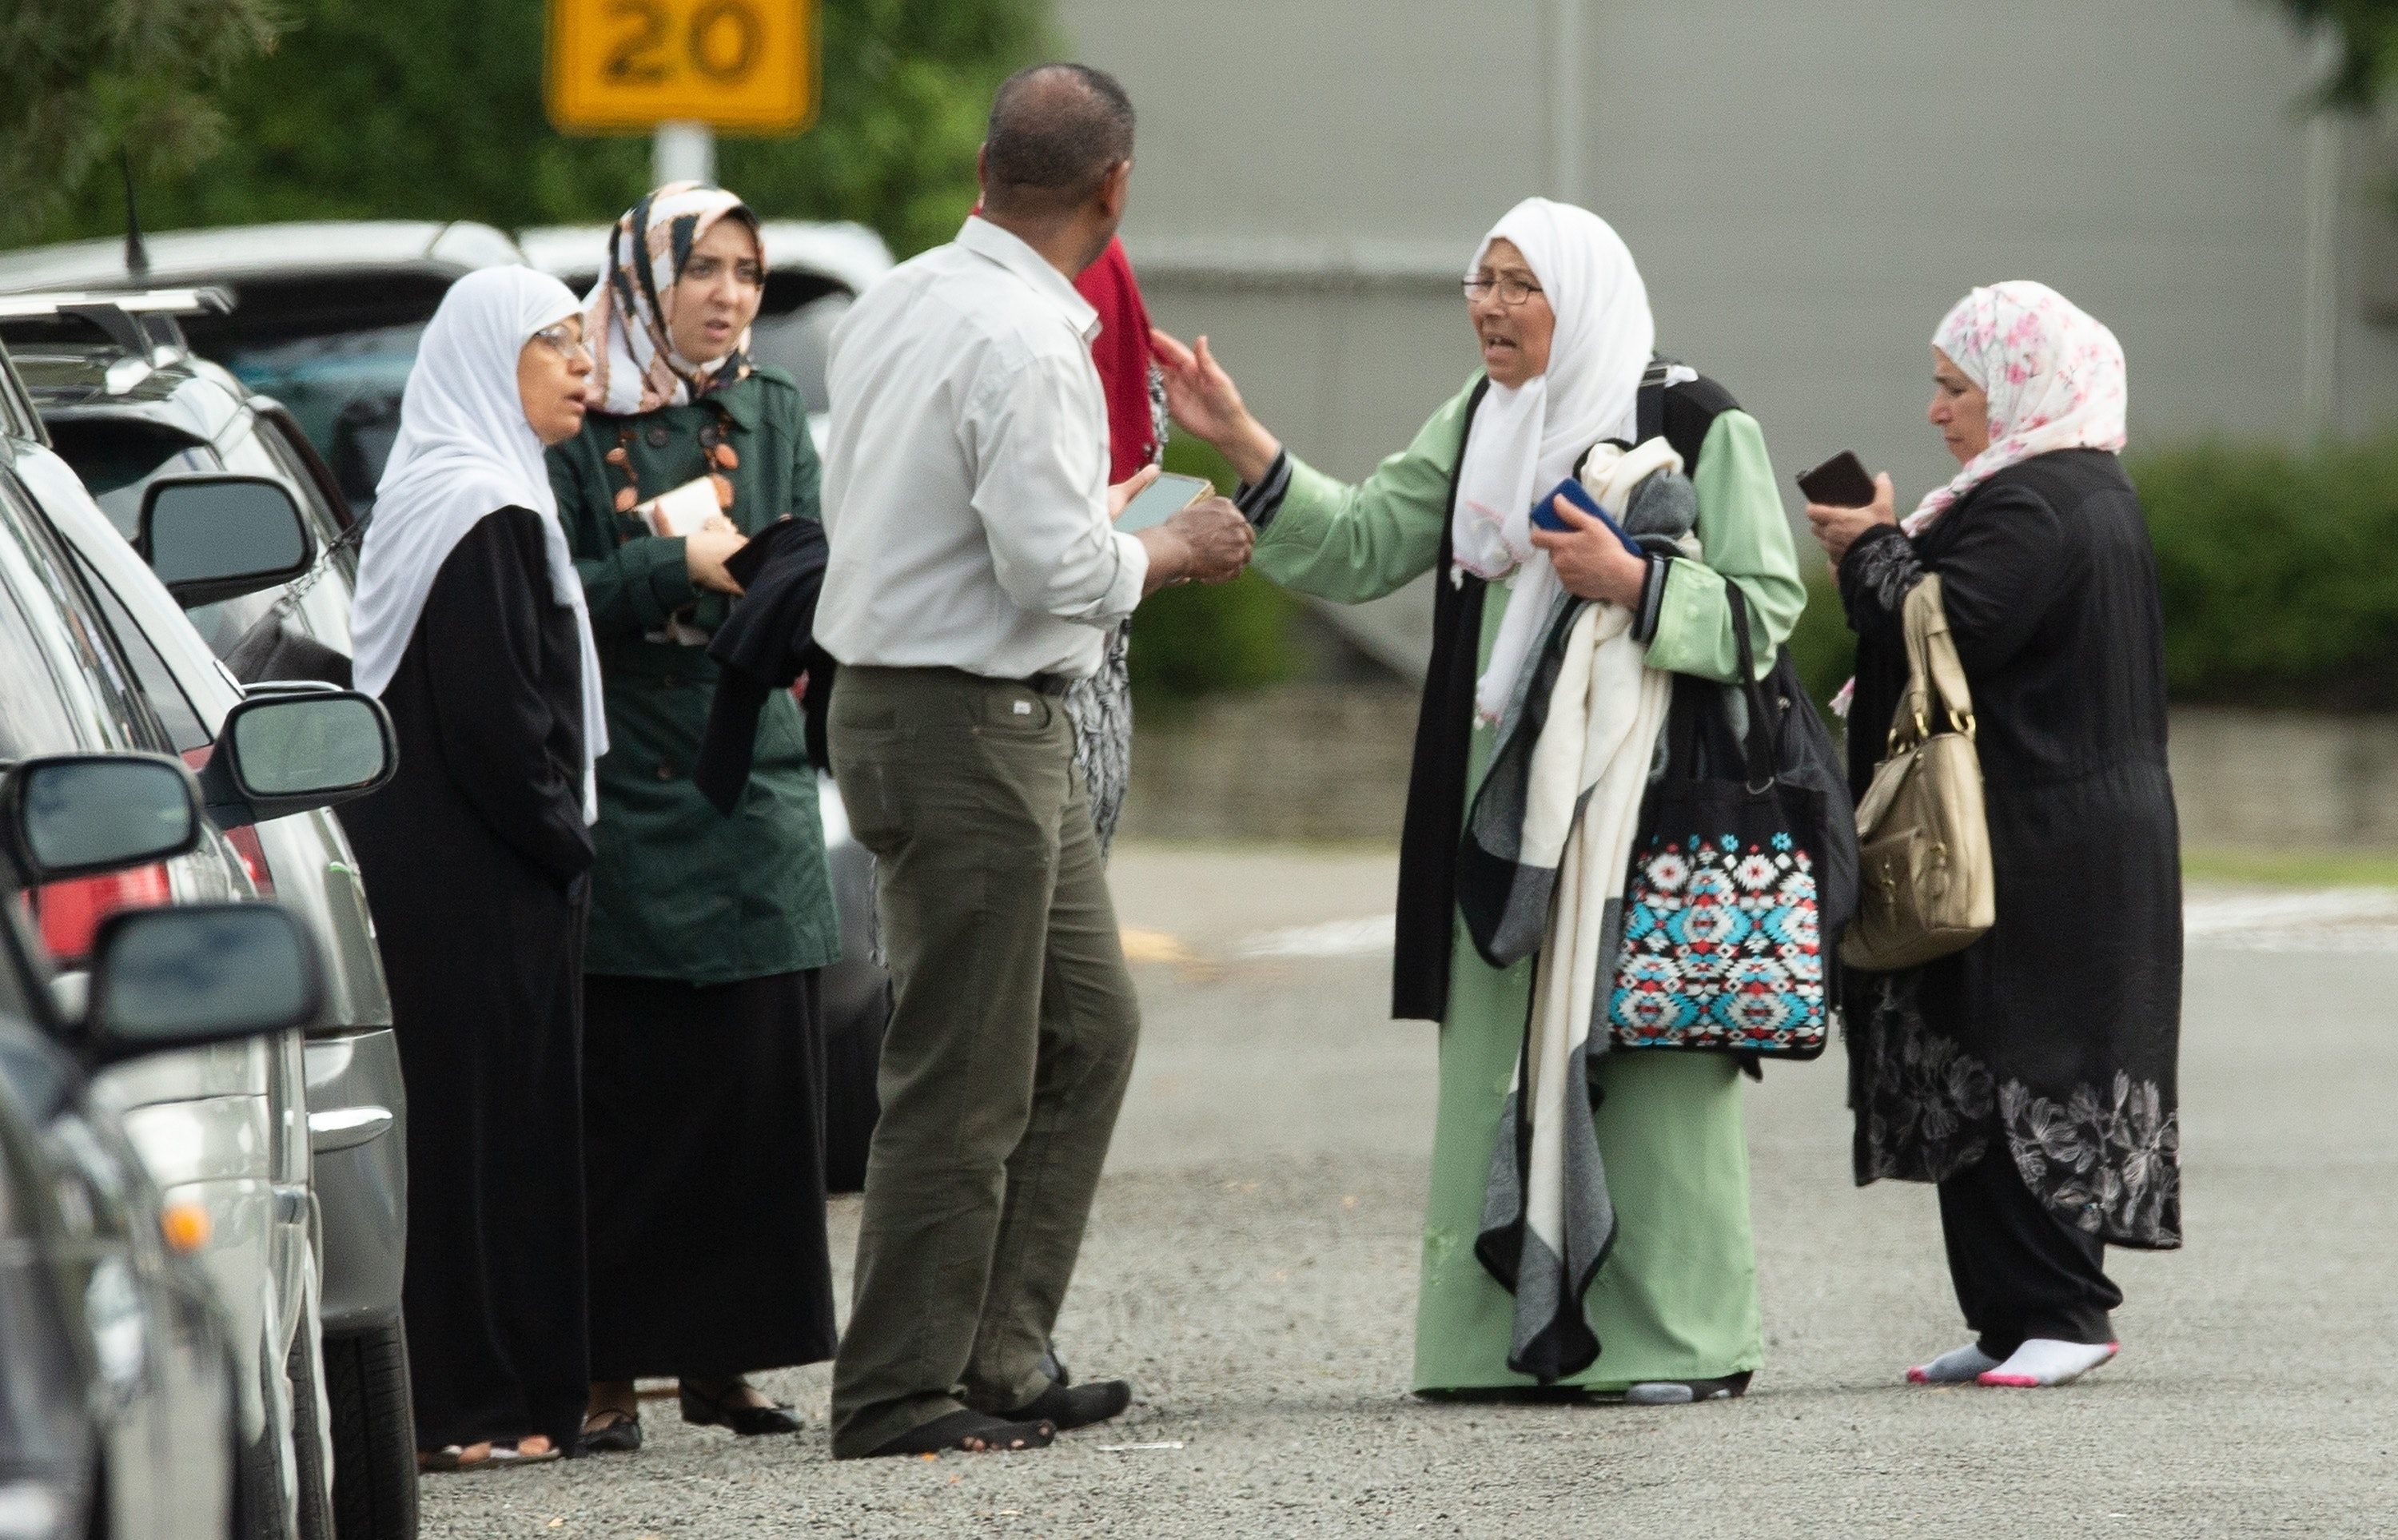 Families outside following a shooting at mosque in Christchurch, New Zealand. Photo credit: AAP/Martin Hunter, CC BY-SA